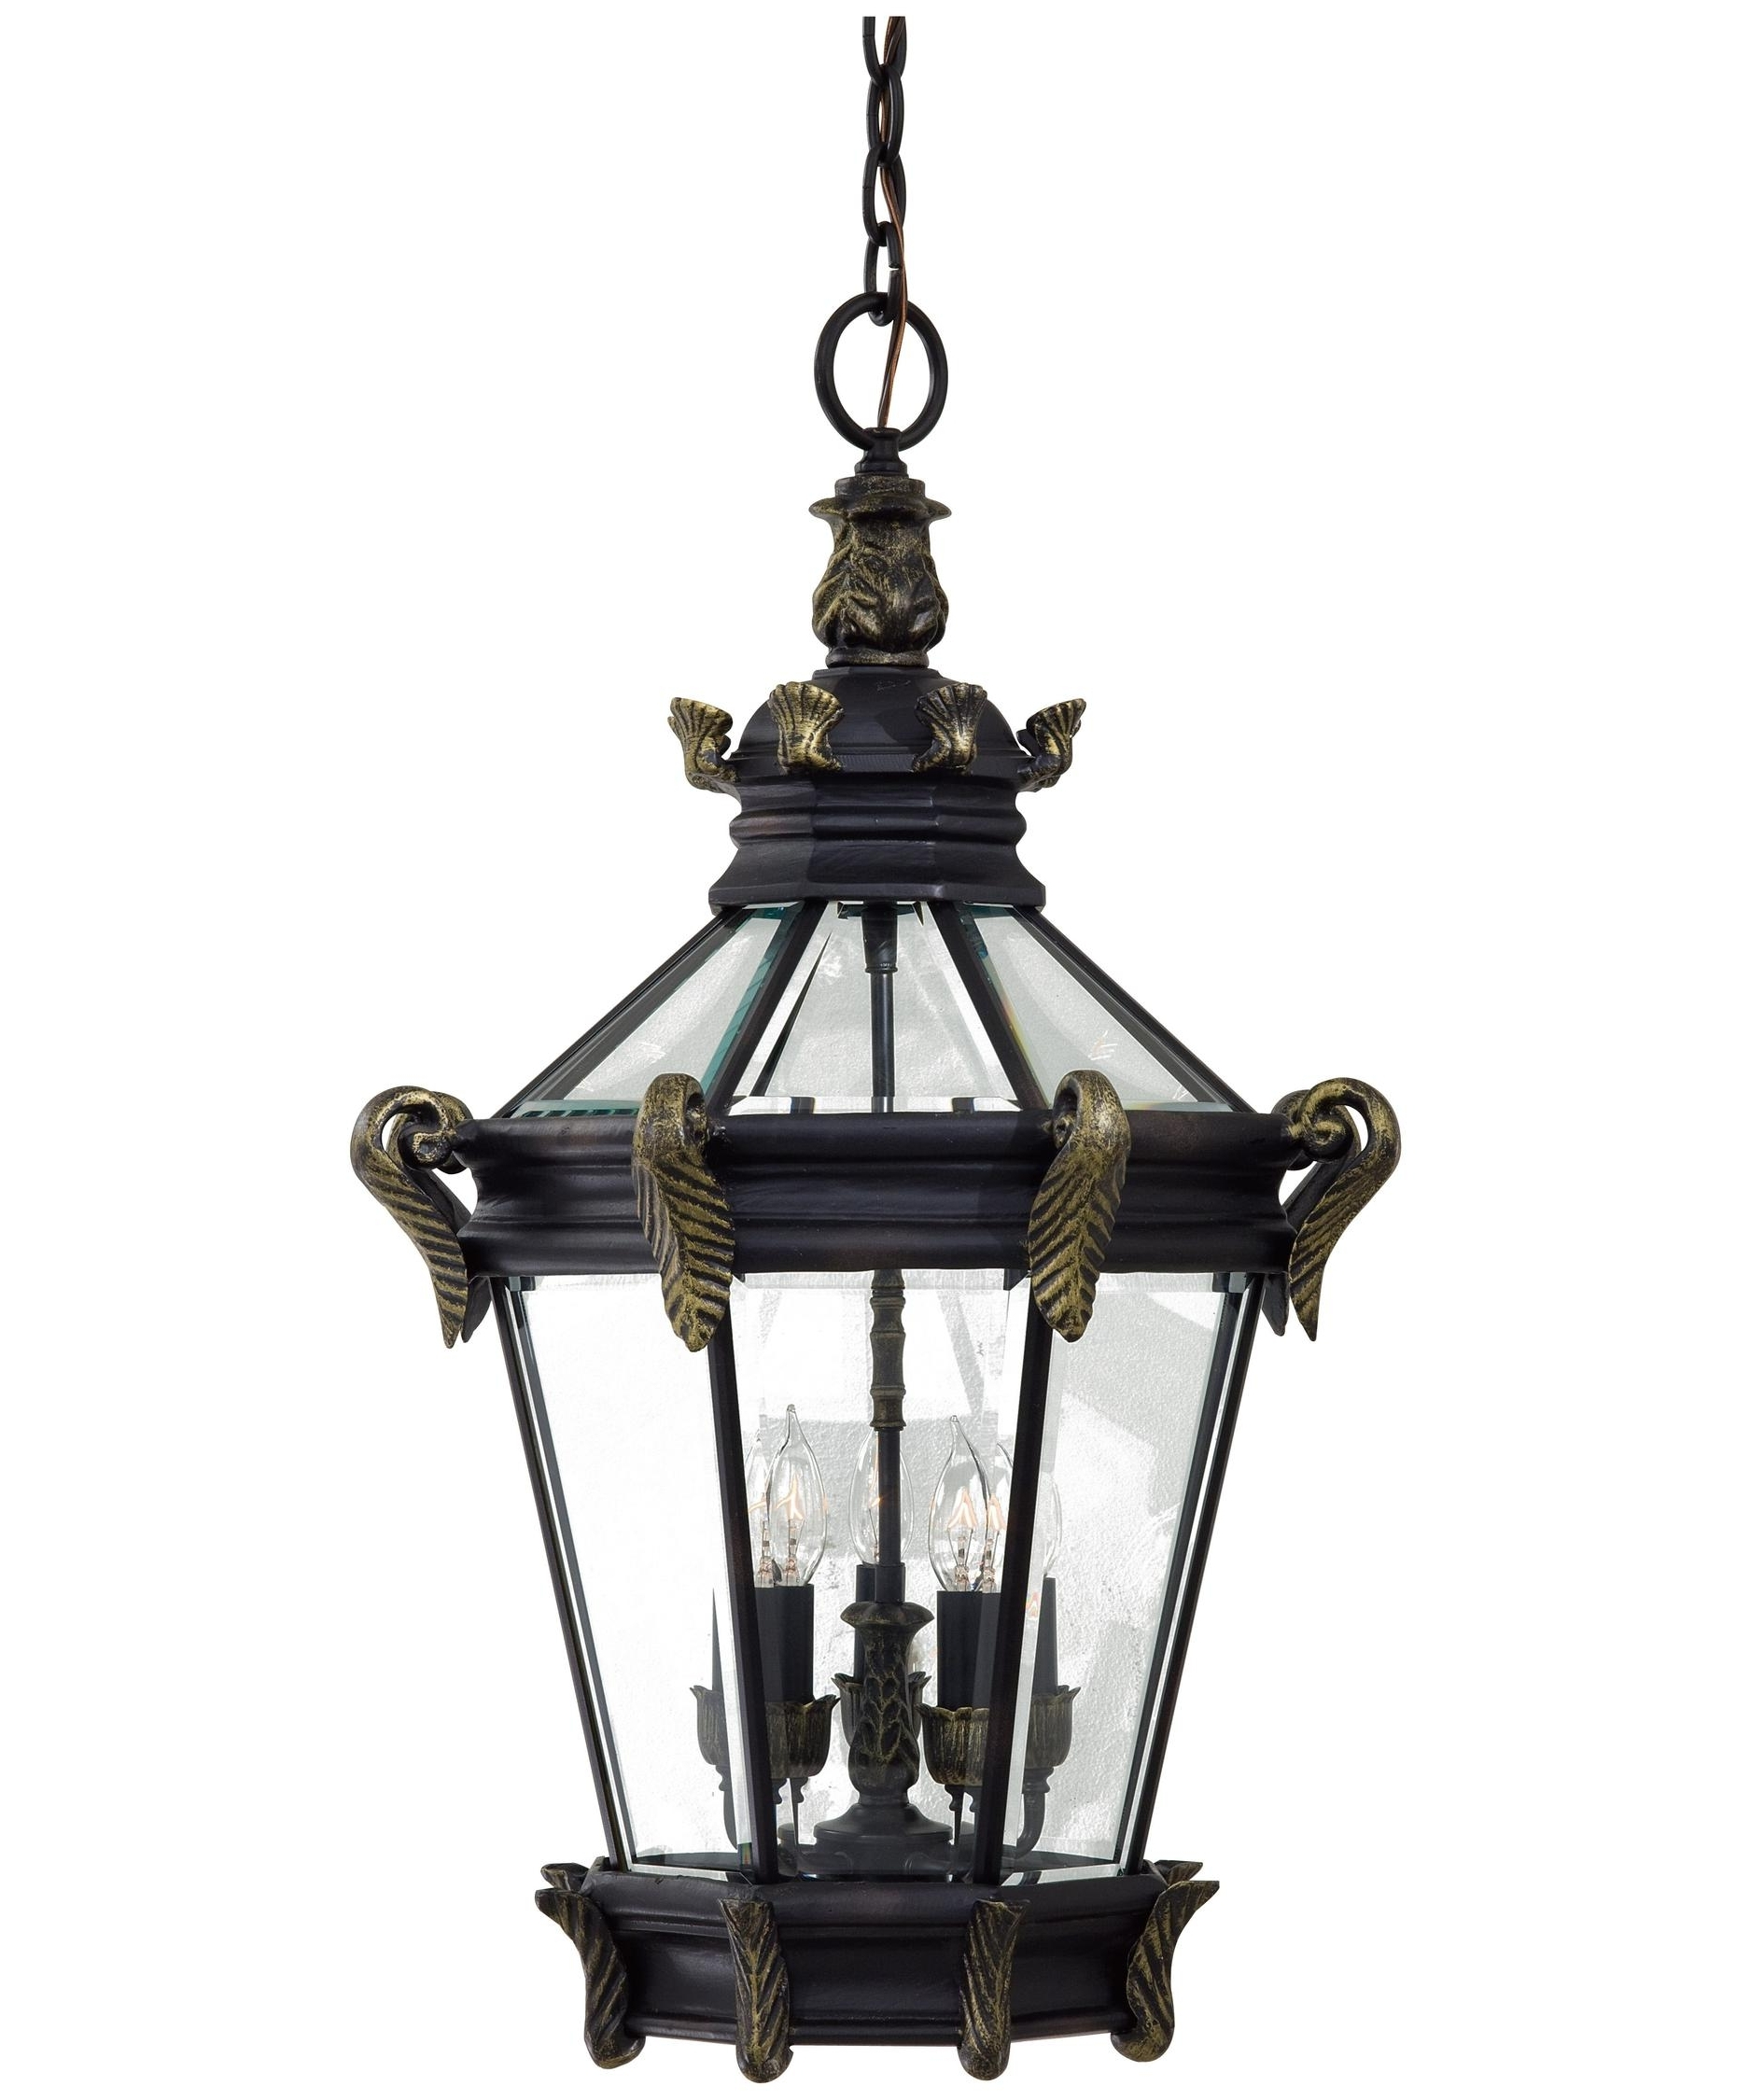 Minka Lavery 8934 Stratford Hall 19 Inch Wide 5 Light Outdoor Regarding Most Current White Outdoor Hanging Lights (View 13 of 20)